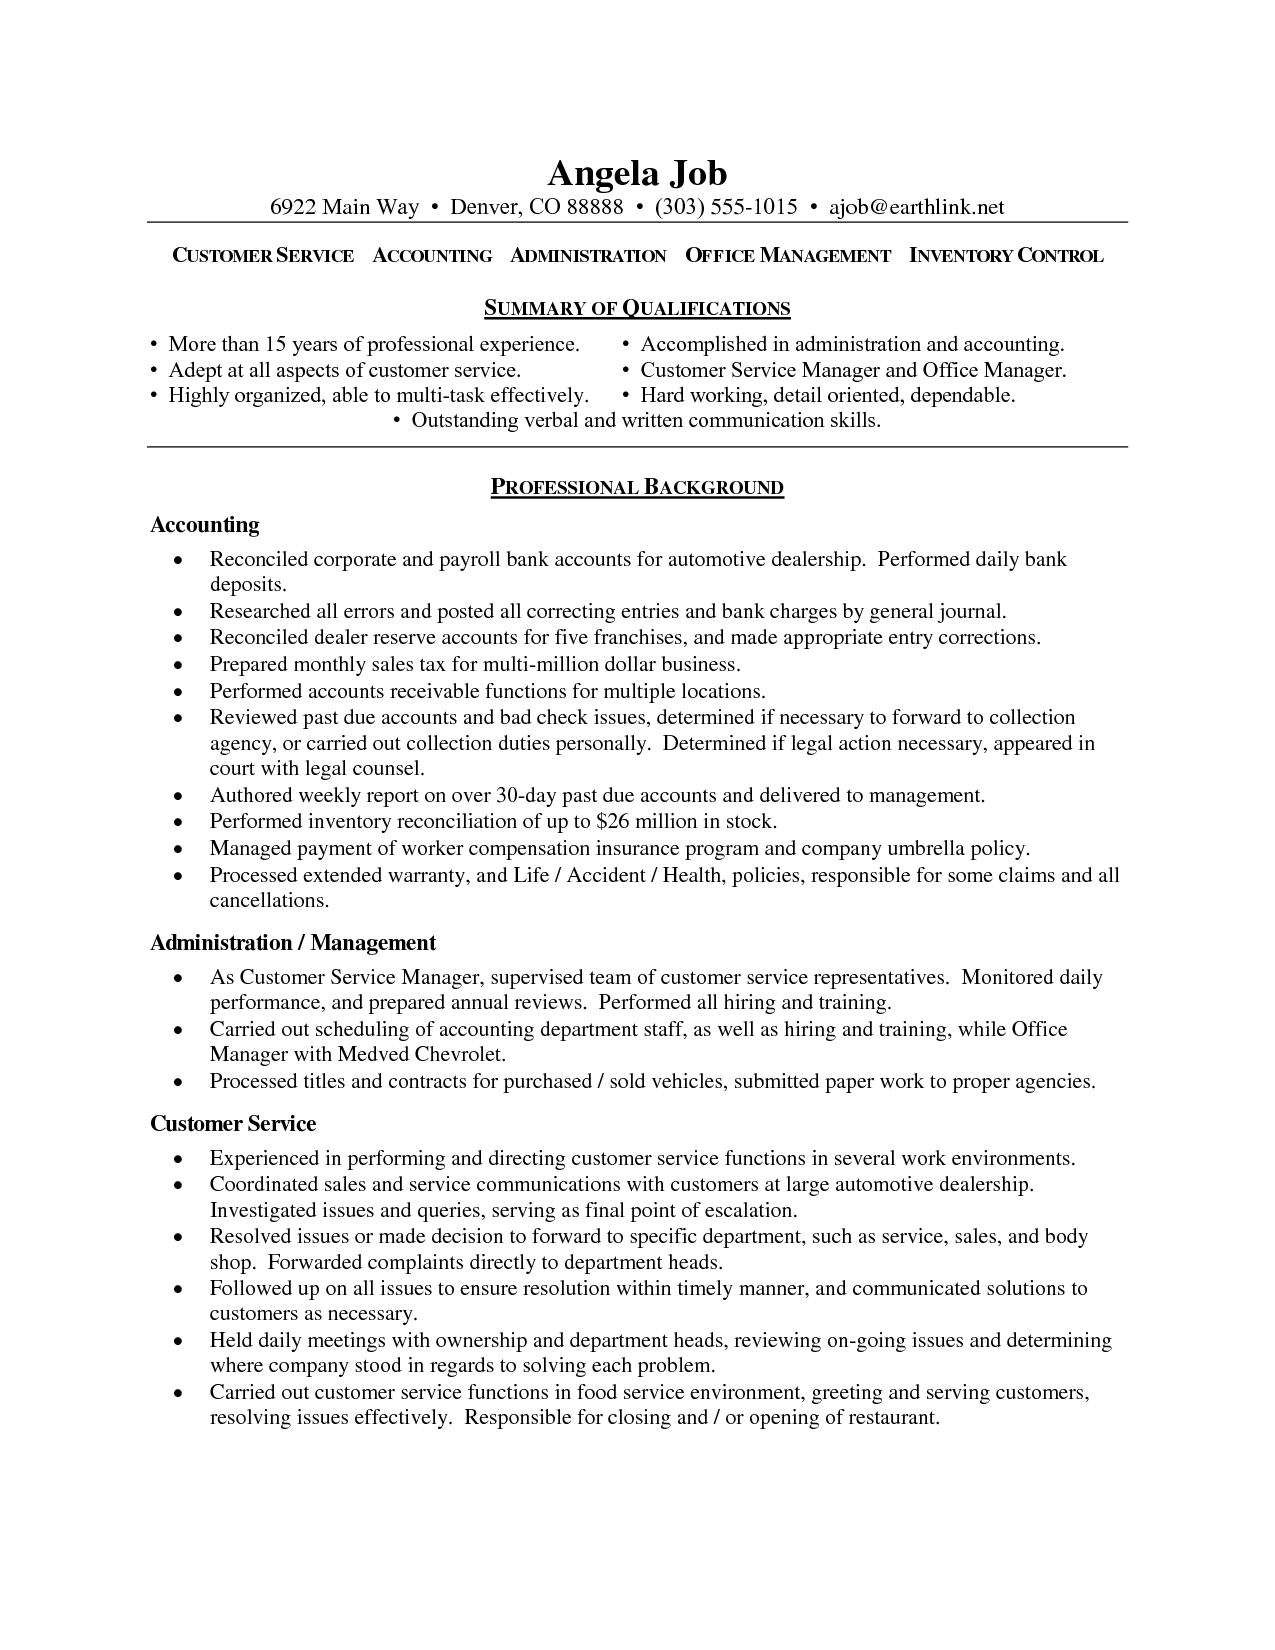 best images about resume entry level 17 best images about resume entry level professional resume and accounting